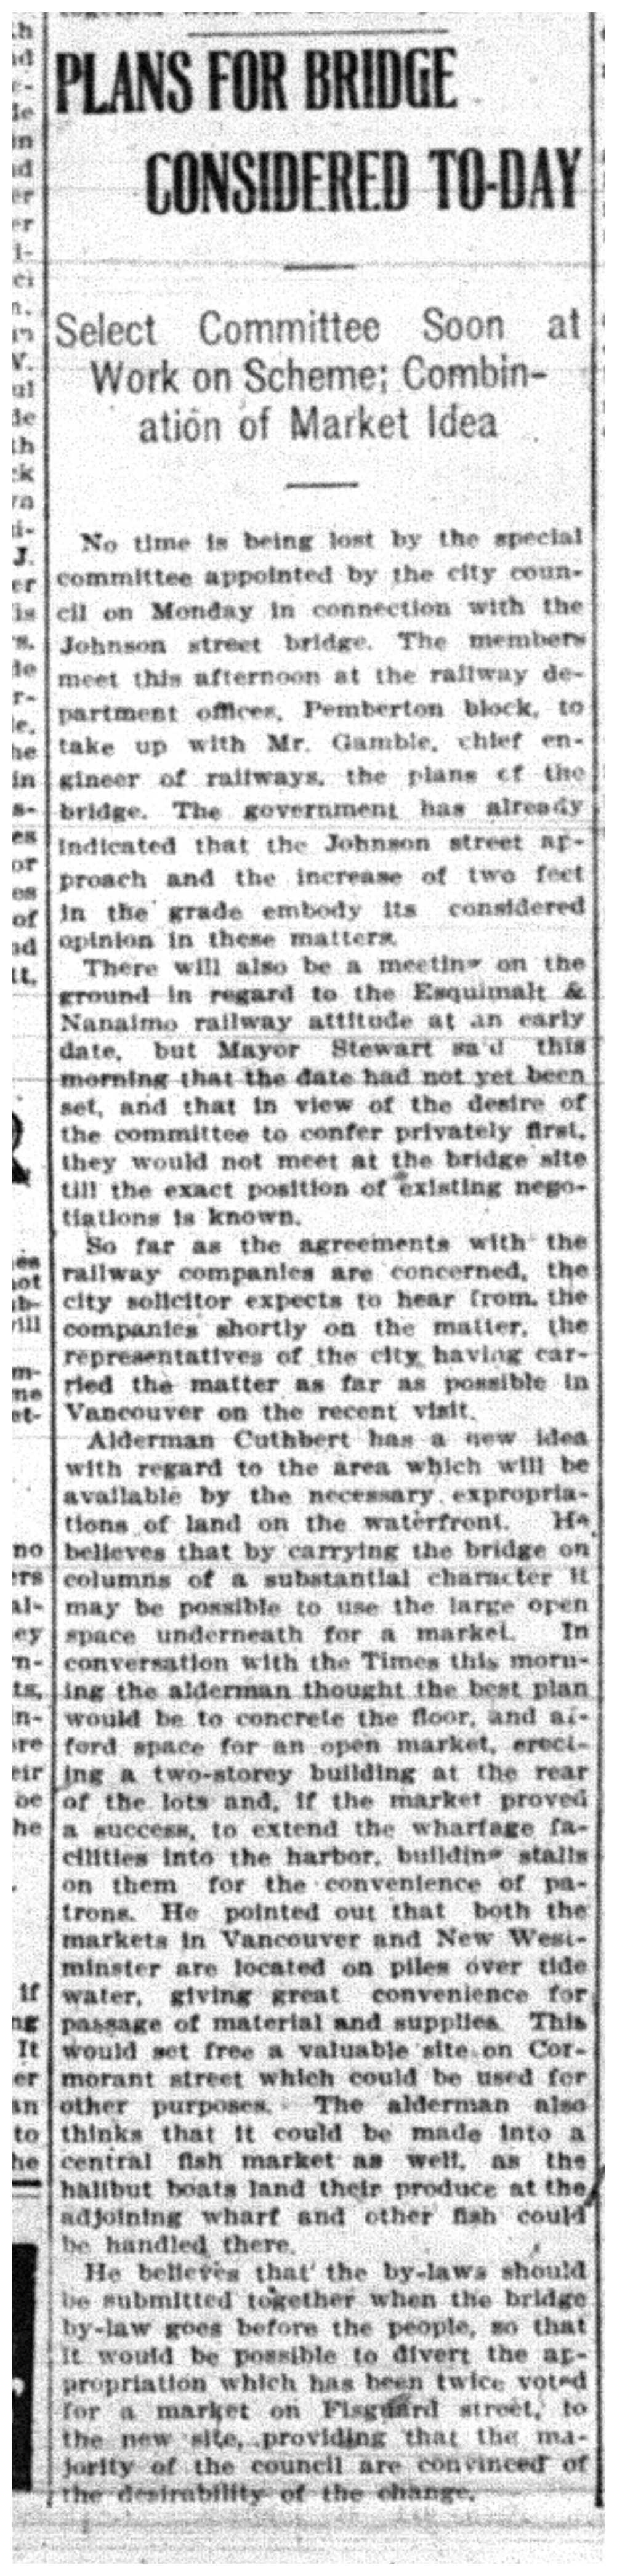 """Plans for Bridge Considered To-Day"""